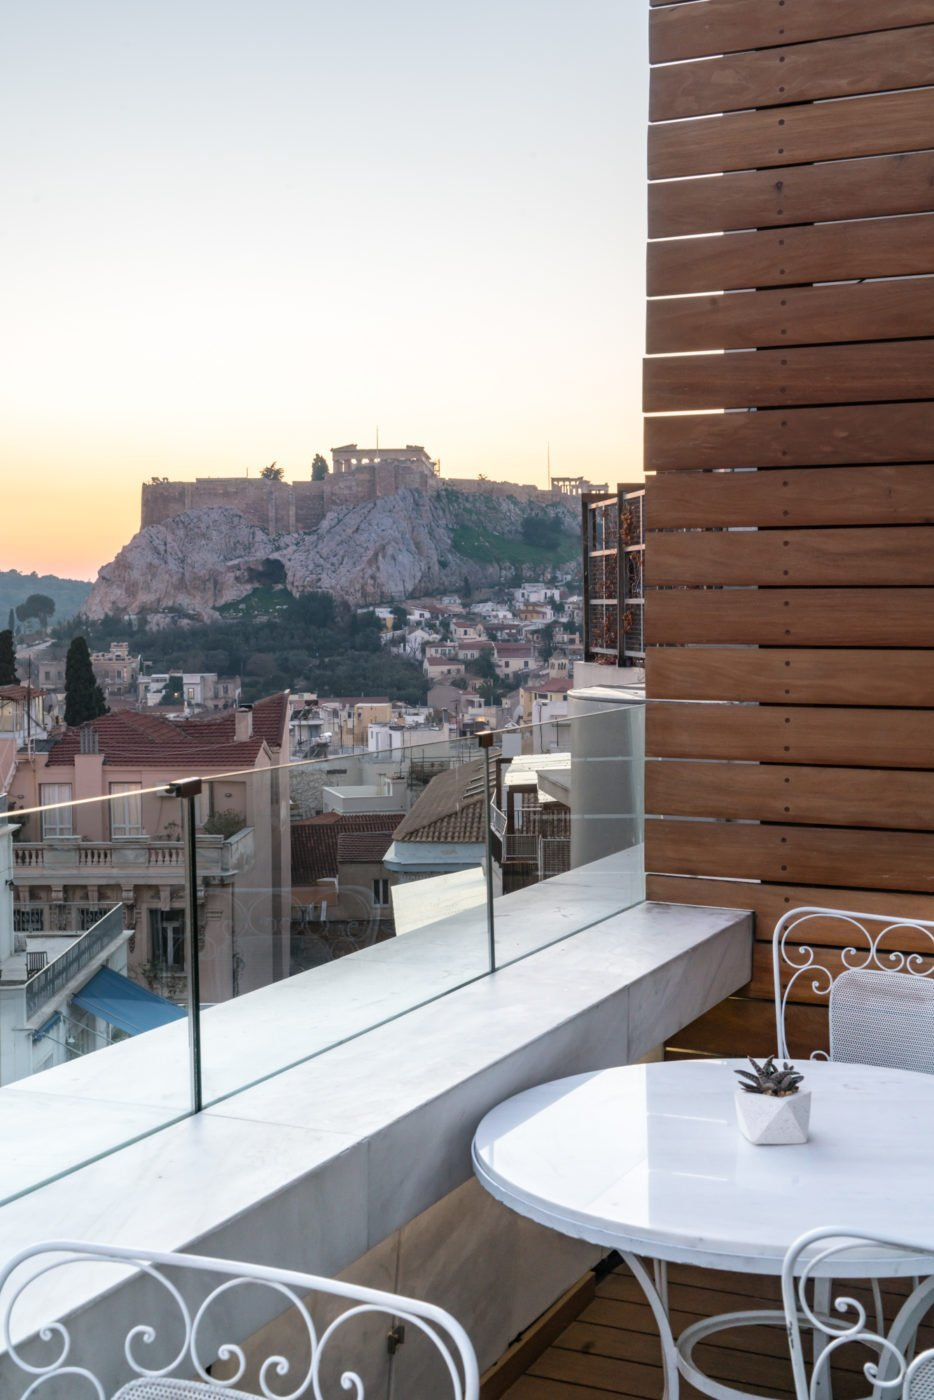 Best viewpoint of the Acropolis from the rooftop terrace at New Hotel Athens